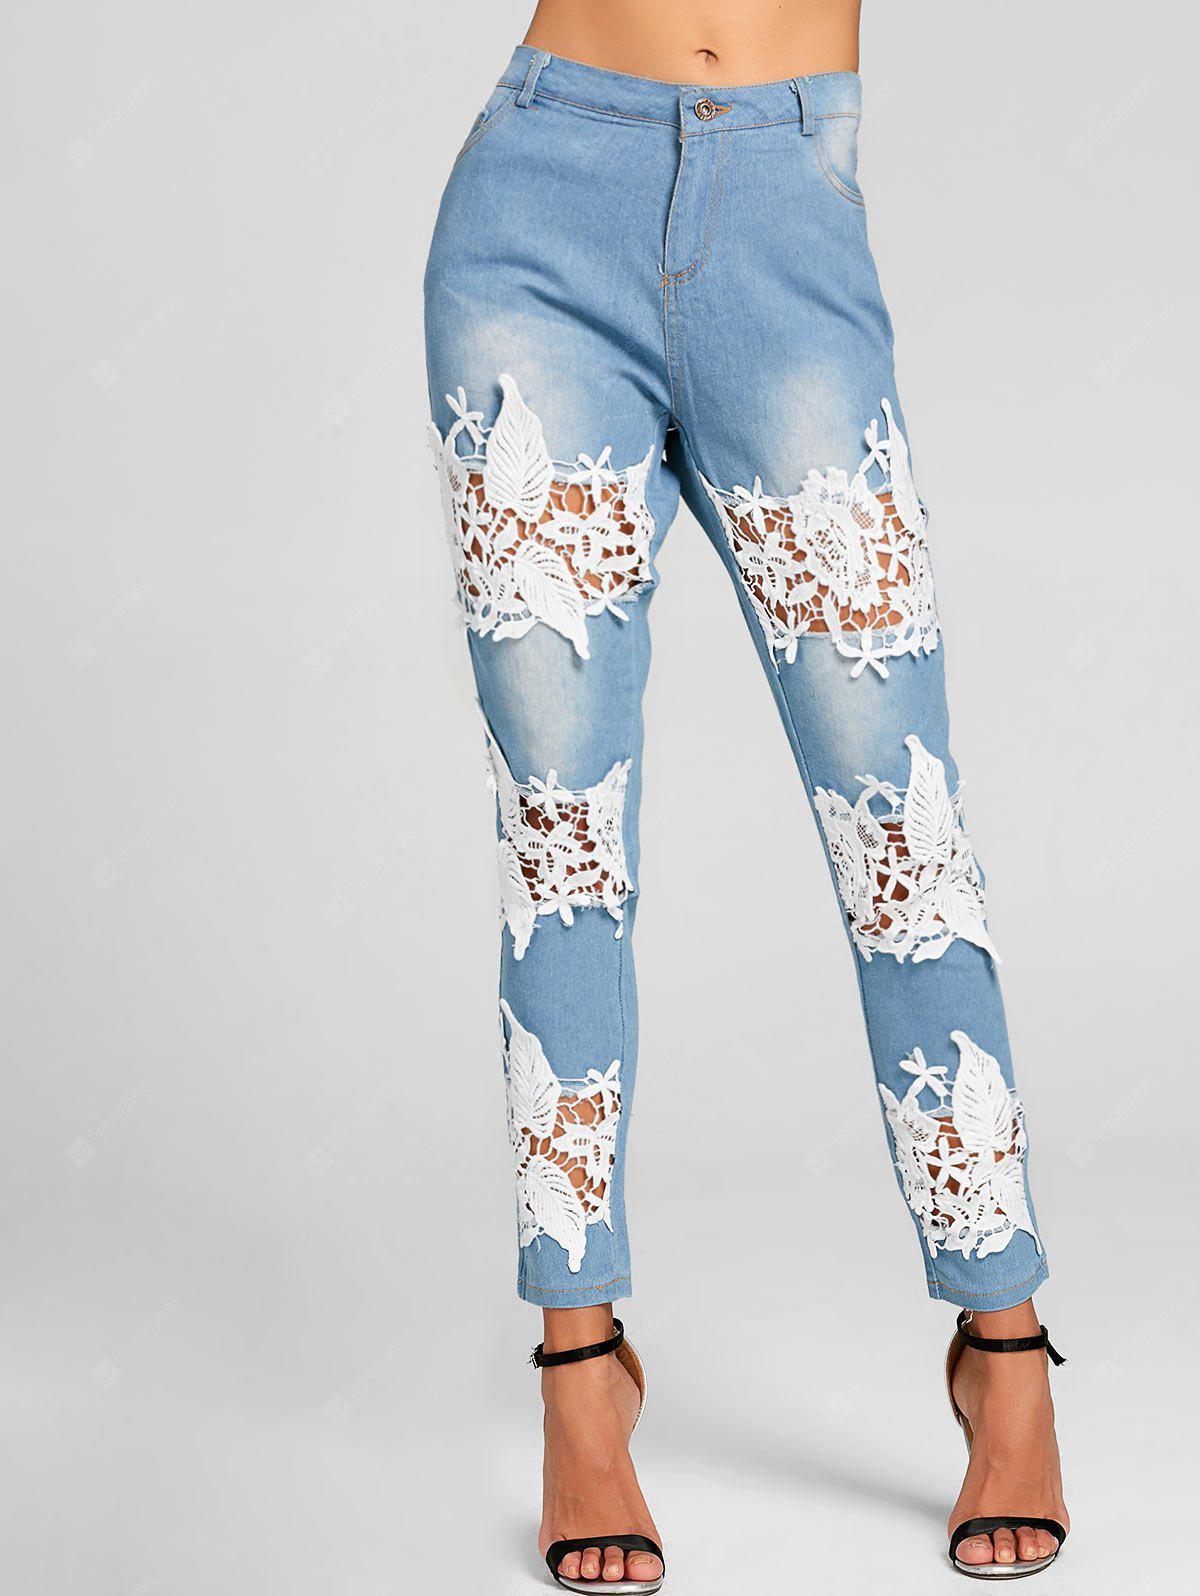 Lace Insert Hole Destroyed Skinny Jeans